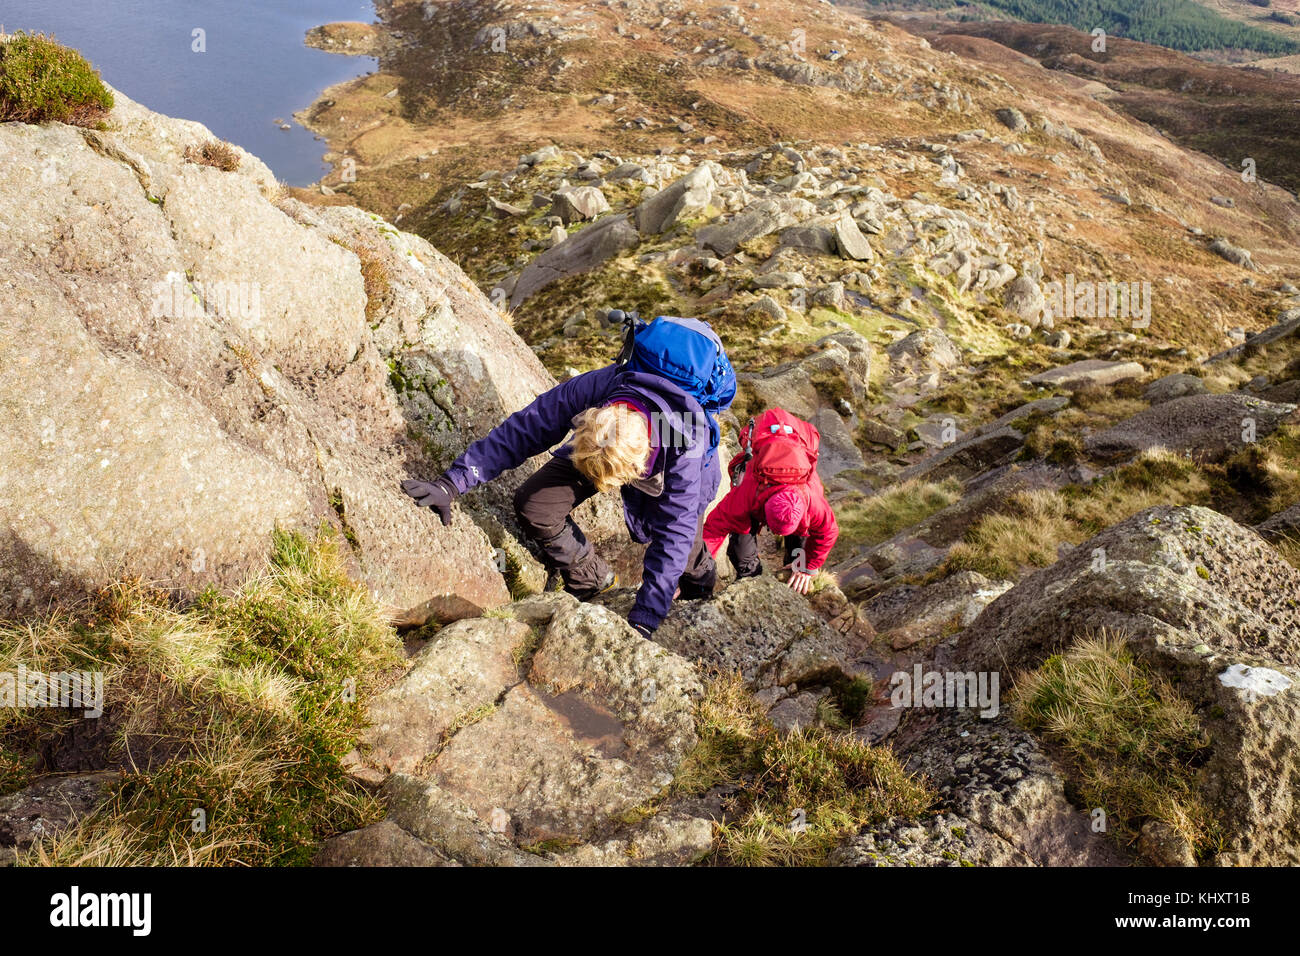 Two Hikers Climbing On Daear Ddu East Ridge Rock Scramble Route Carnedd Moel Siabod Mountain In Mountains Of Snowdonia National Park Wales UK